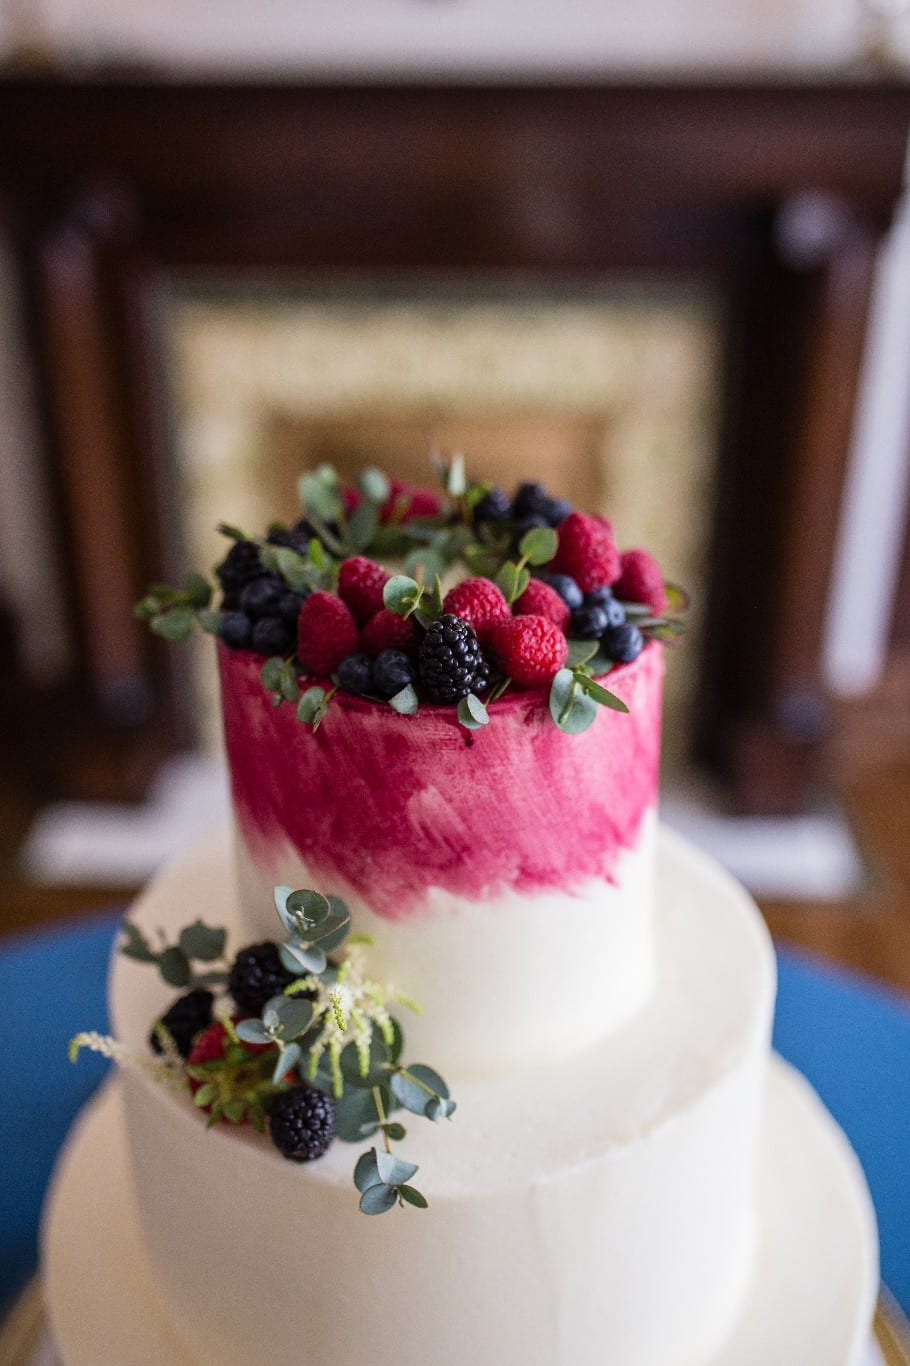 Berry wedding cake by Wolfe Gourmet Cakes